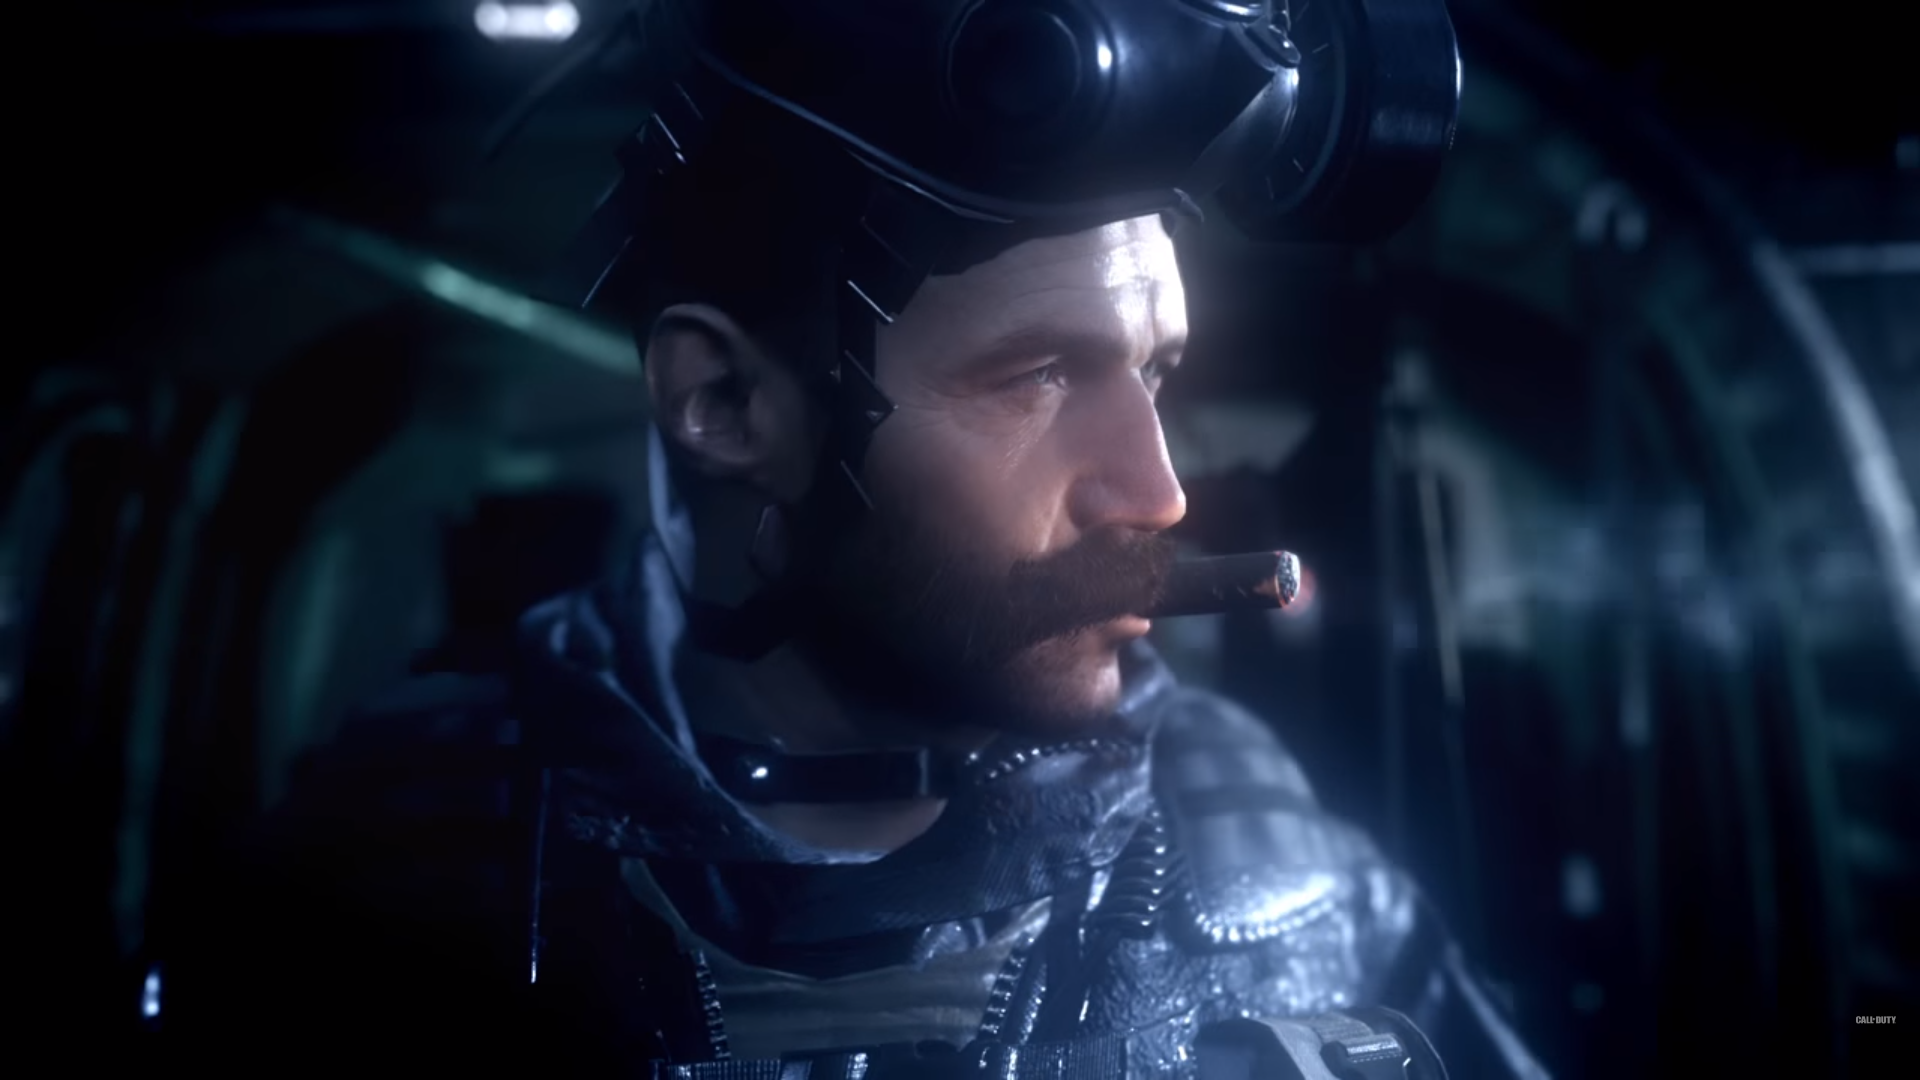 New call of duty commercial - Call Of Duty Modern Warfare Remastered